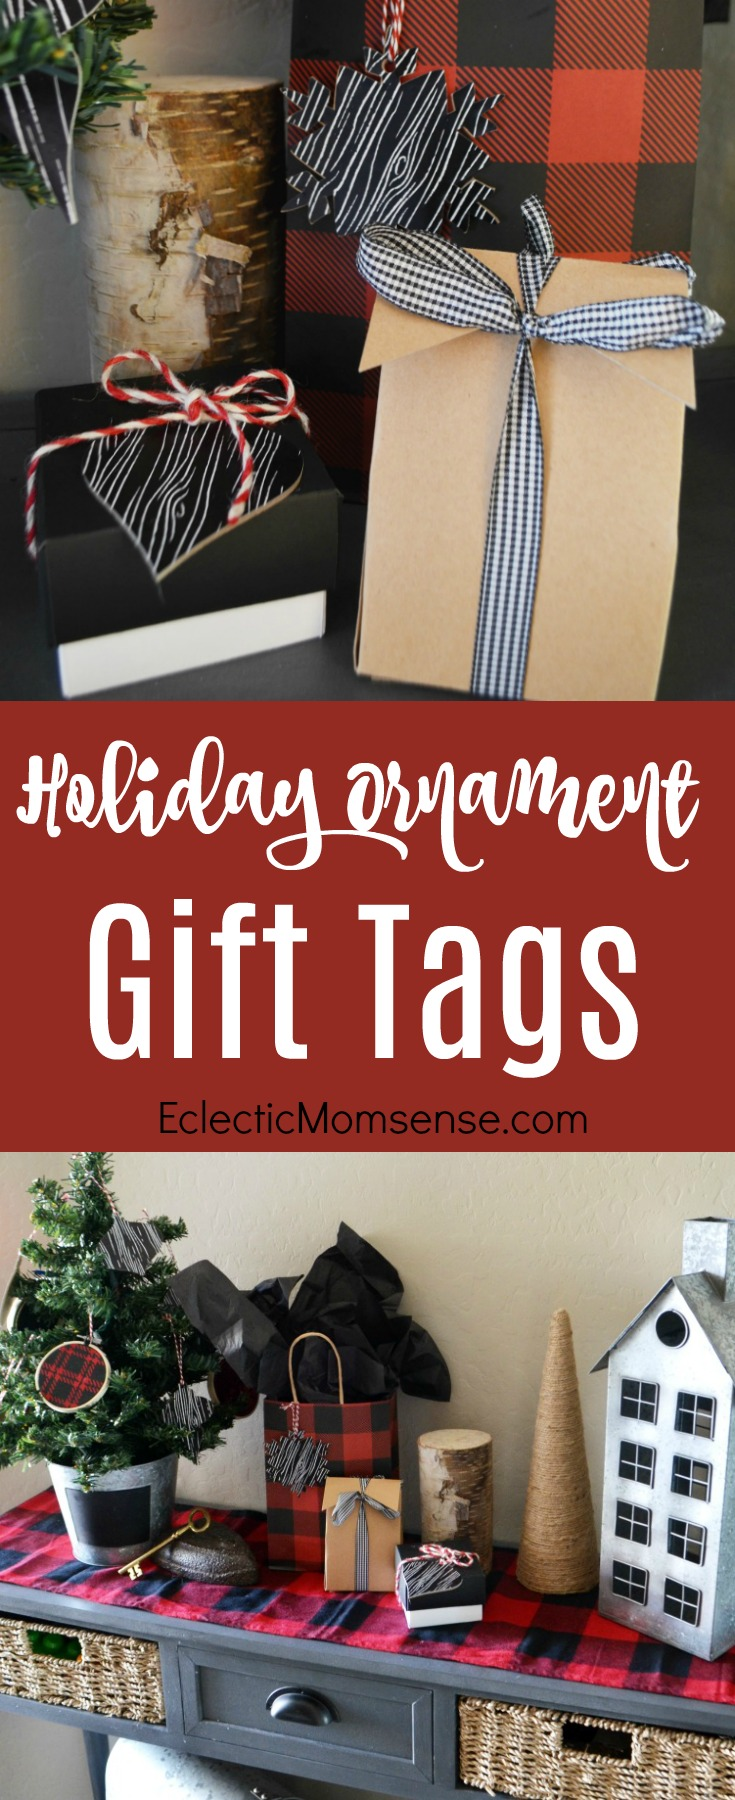 Holiday Ornament Gift Tags | Create easy holiday gift tags that double as ornaments with Cricut Maker. Plus 2 other easy handmade Cricut projects.